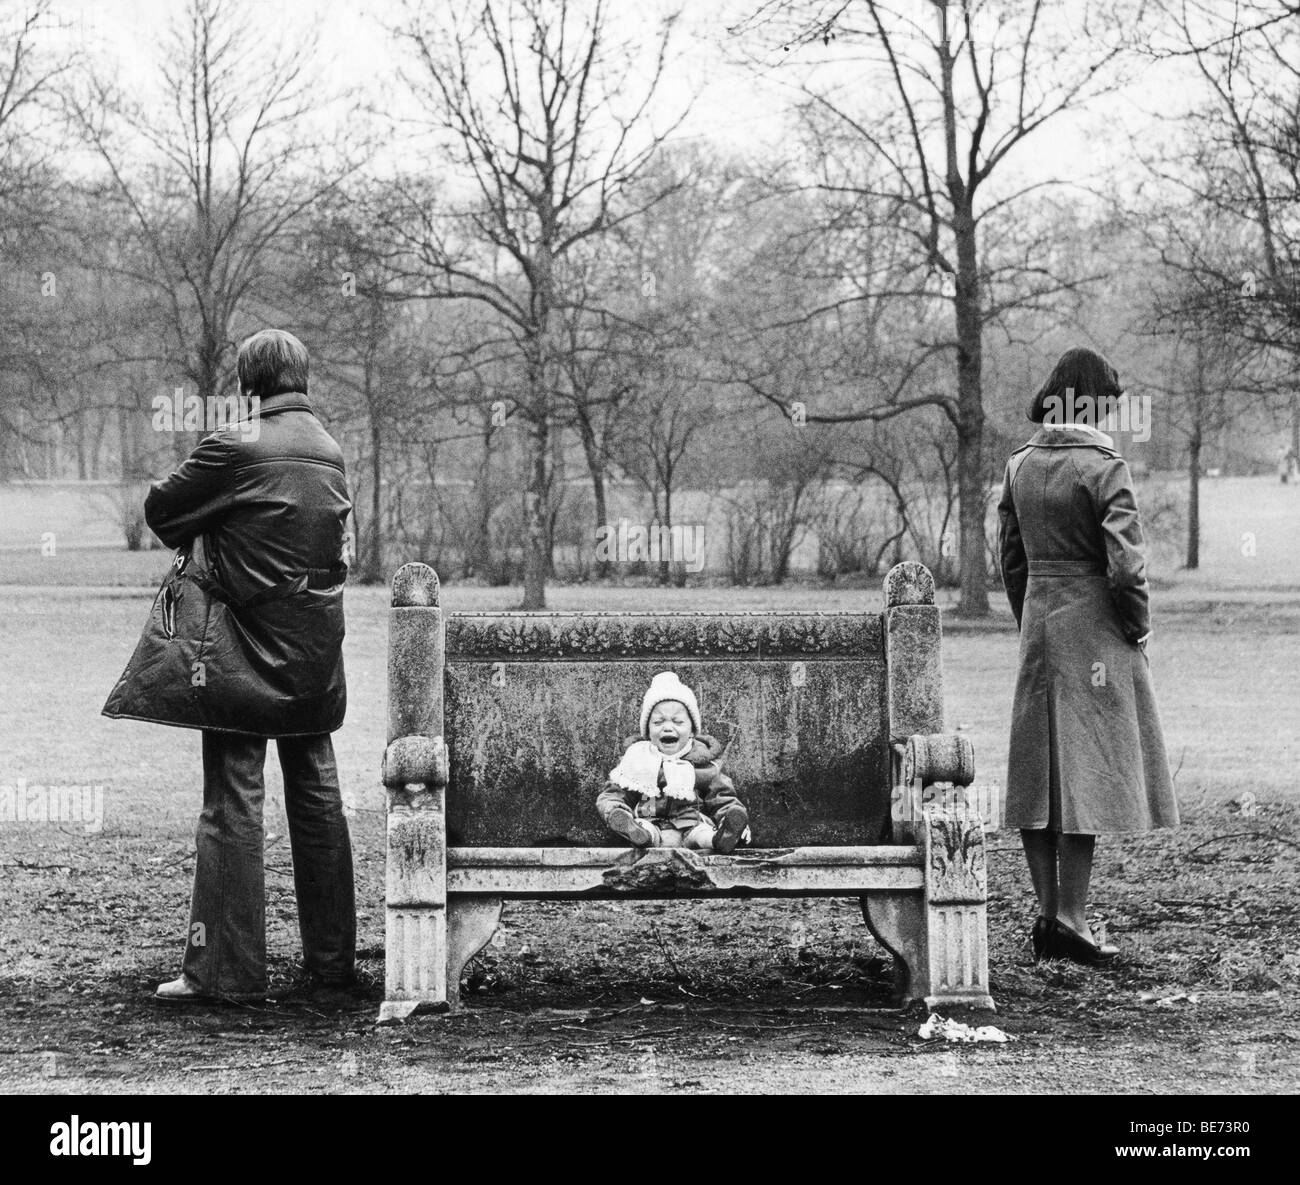 Crying child, parents at odds, Leipzig, GDR, East Germany, historical photo, about 1978 - Stock Image